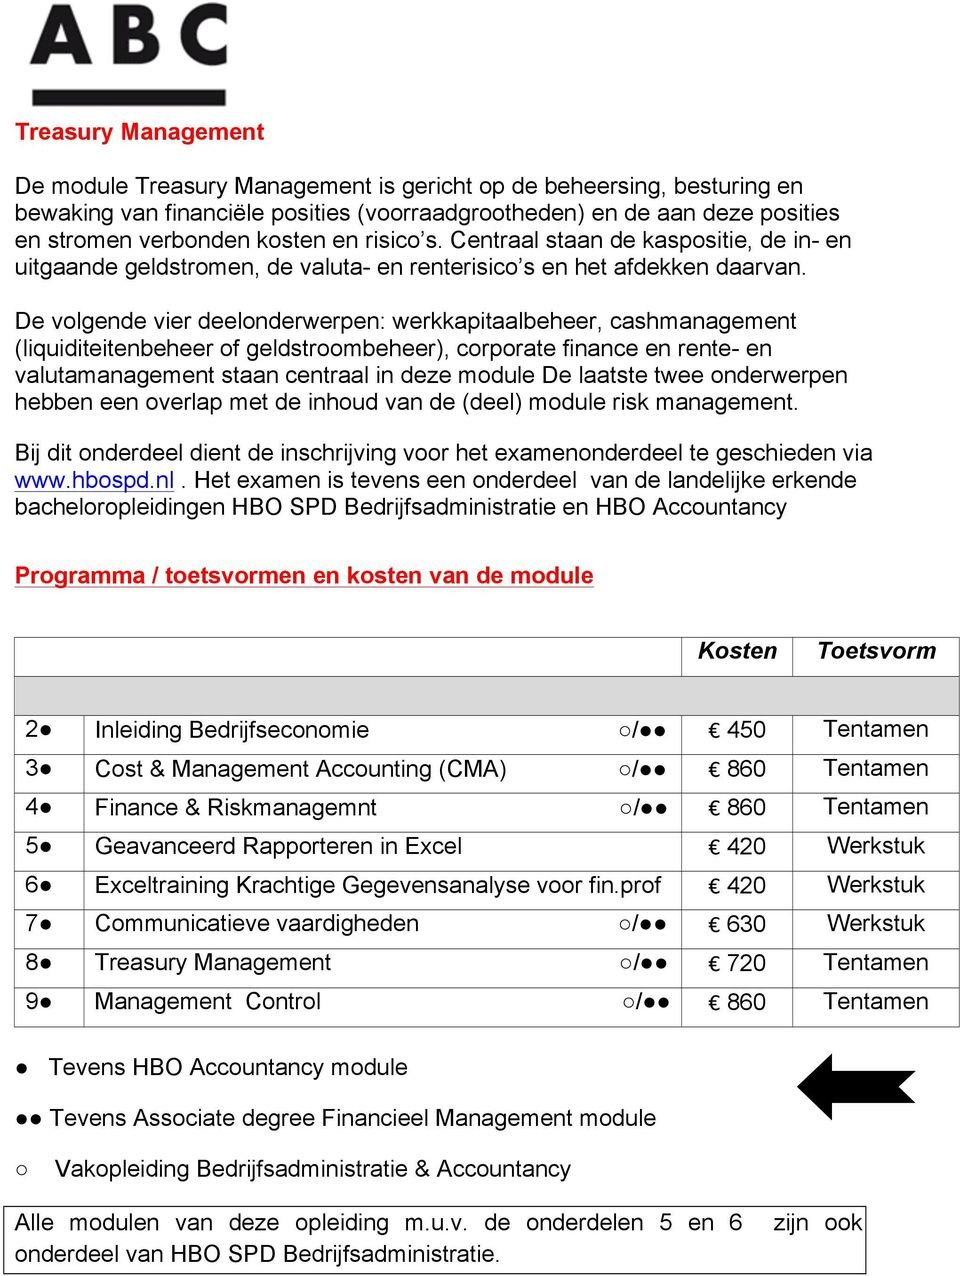 De volgende vier deelonderwerpen: werkkapitaalbeheer, cashmanagement (liquiditeitenbeheer of geldstroombeheer), corporate finance en rente- en valutamanagement staan centraal in deze module De